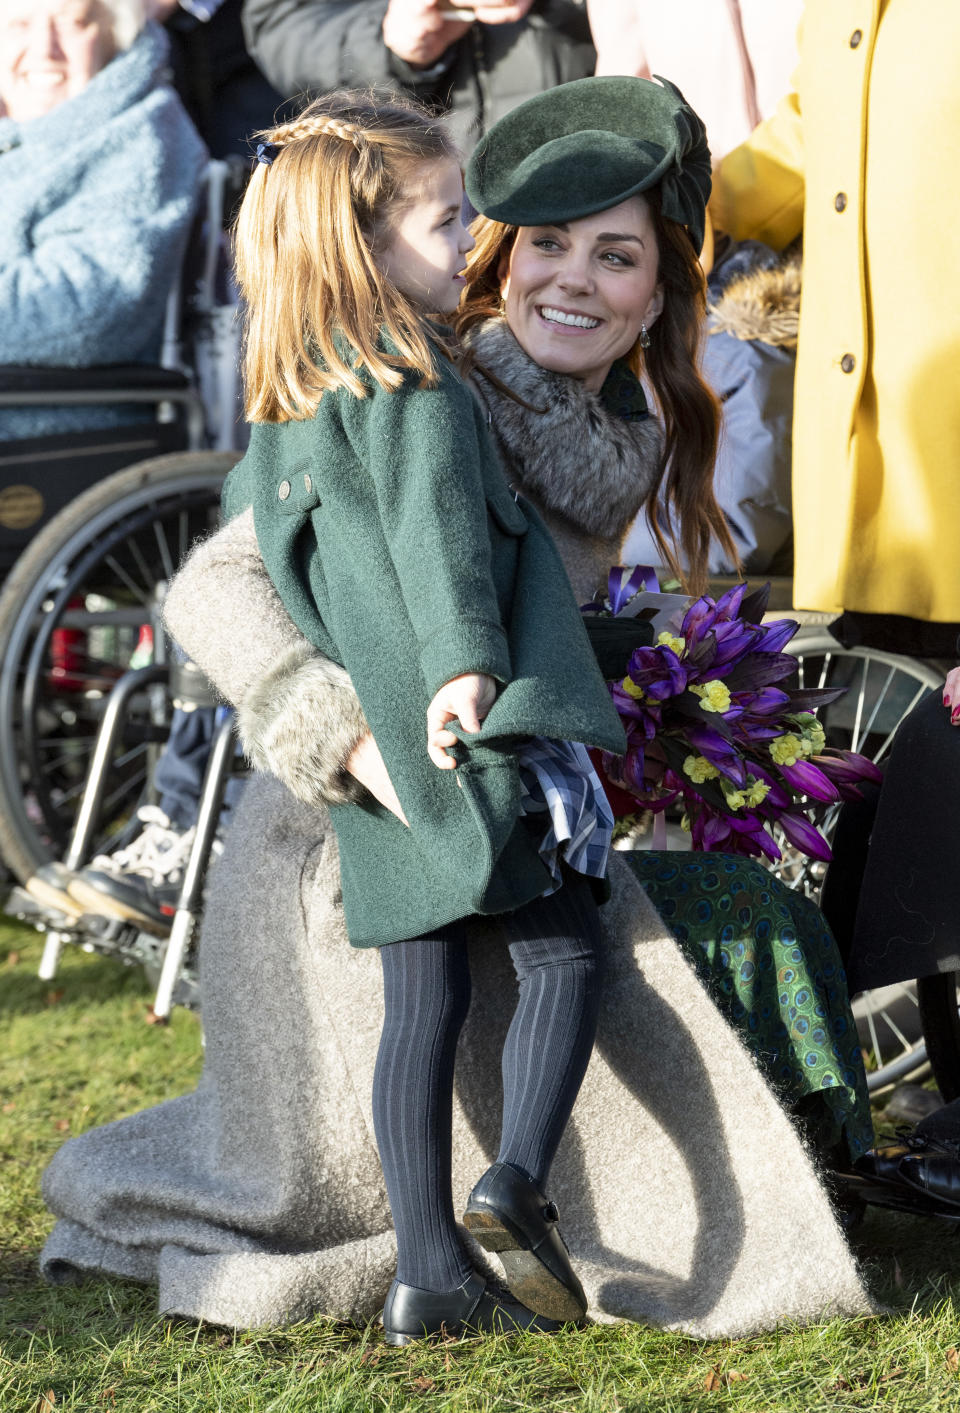 KING'S LYNN, ENGLAND - DECEMBER 25: Princess Charlotte of Cambridge and Catherine, Duchess of Cambridge attend the Christmas Day Church service at Church of St Mary Magdalene on the Sandringham estate on December 25, 2019 in King's Lynn, United Kingdom. (Photo by UK Press Pool/UK Press via Getty Images)